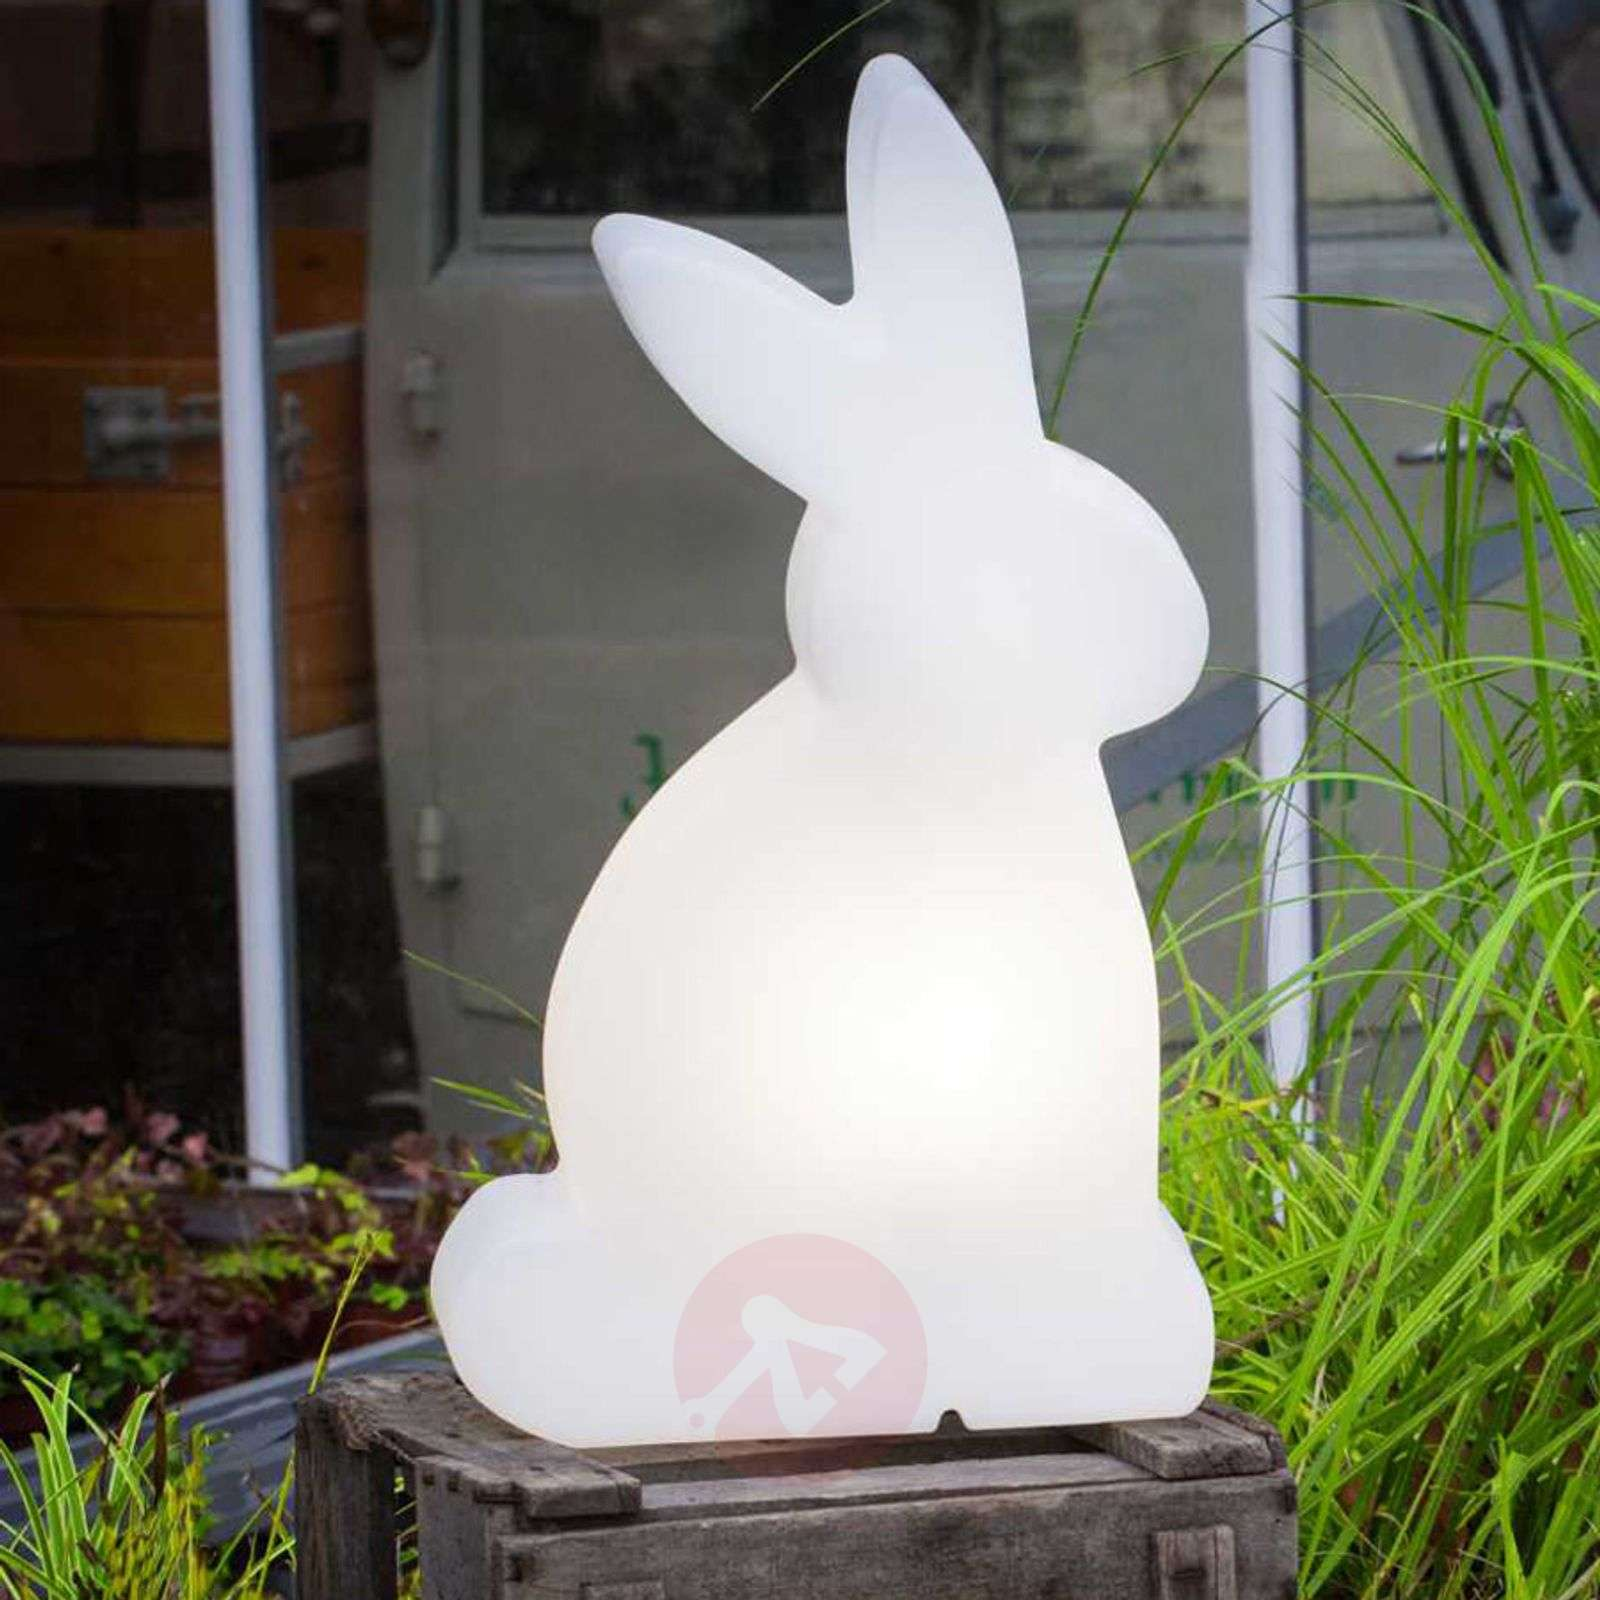 Lampe décorative LED Shining Rabbit, 50 cm-1004079-02